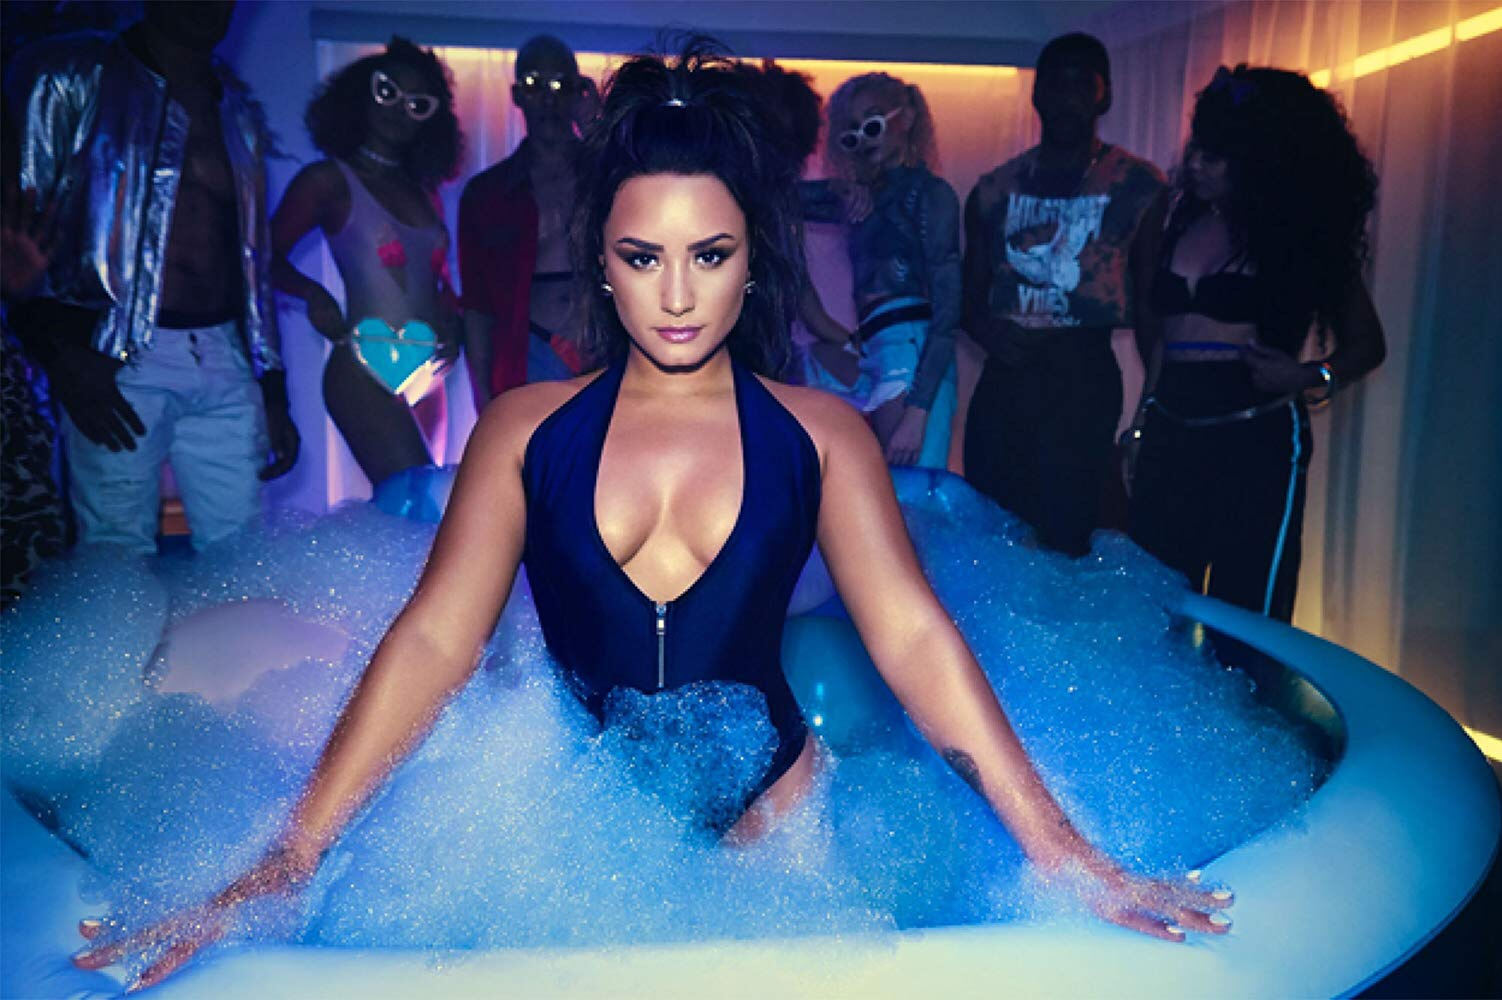 New Demi Lovato Music Coming Means Power Ranking Her Top 5 Bangers